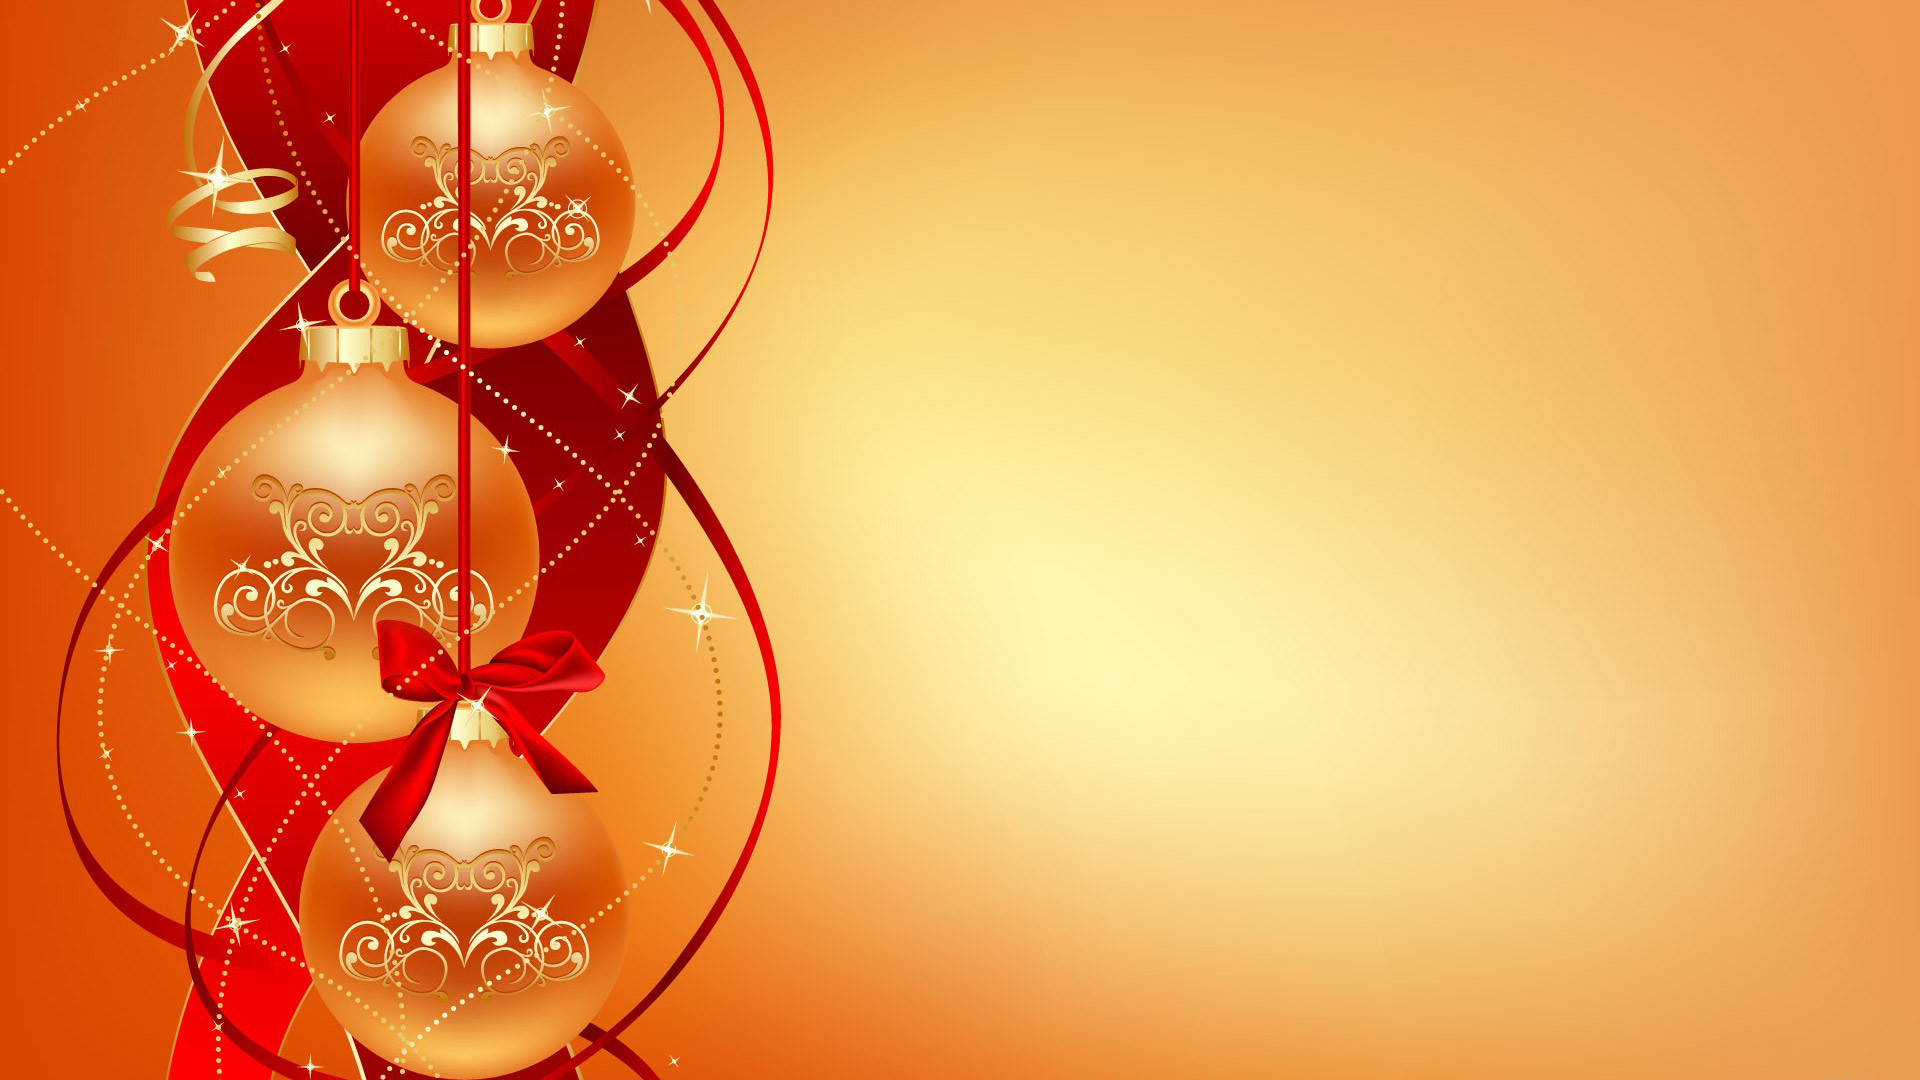 happy new year background images